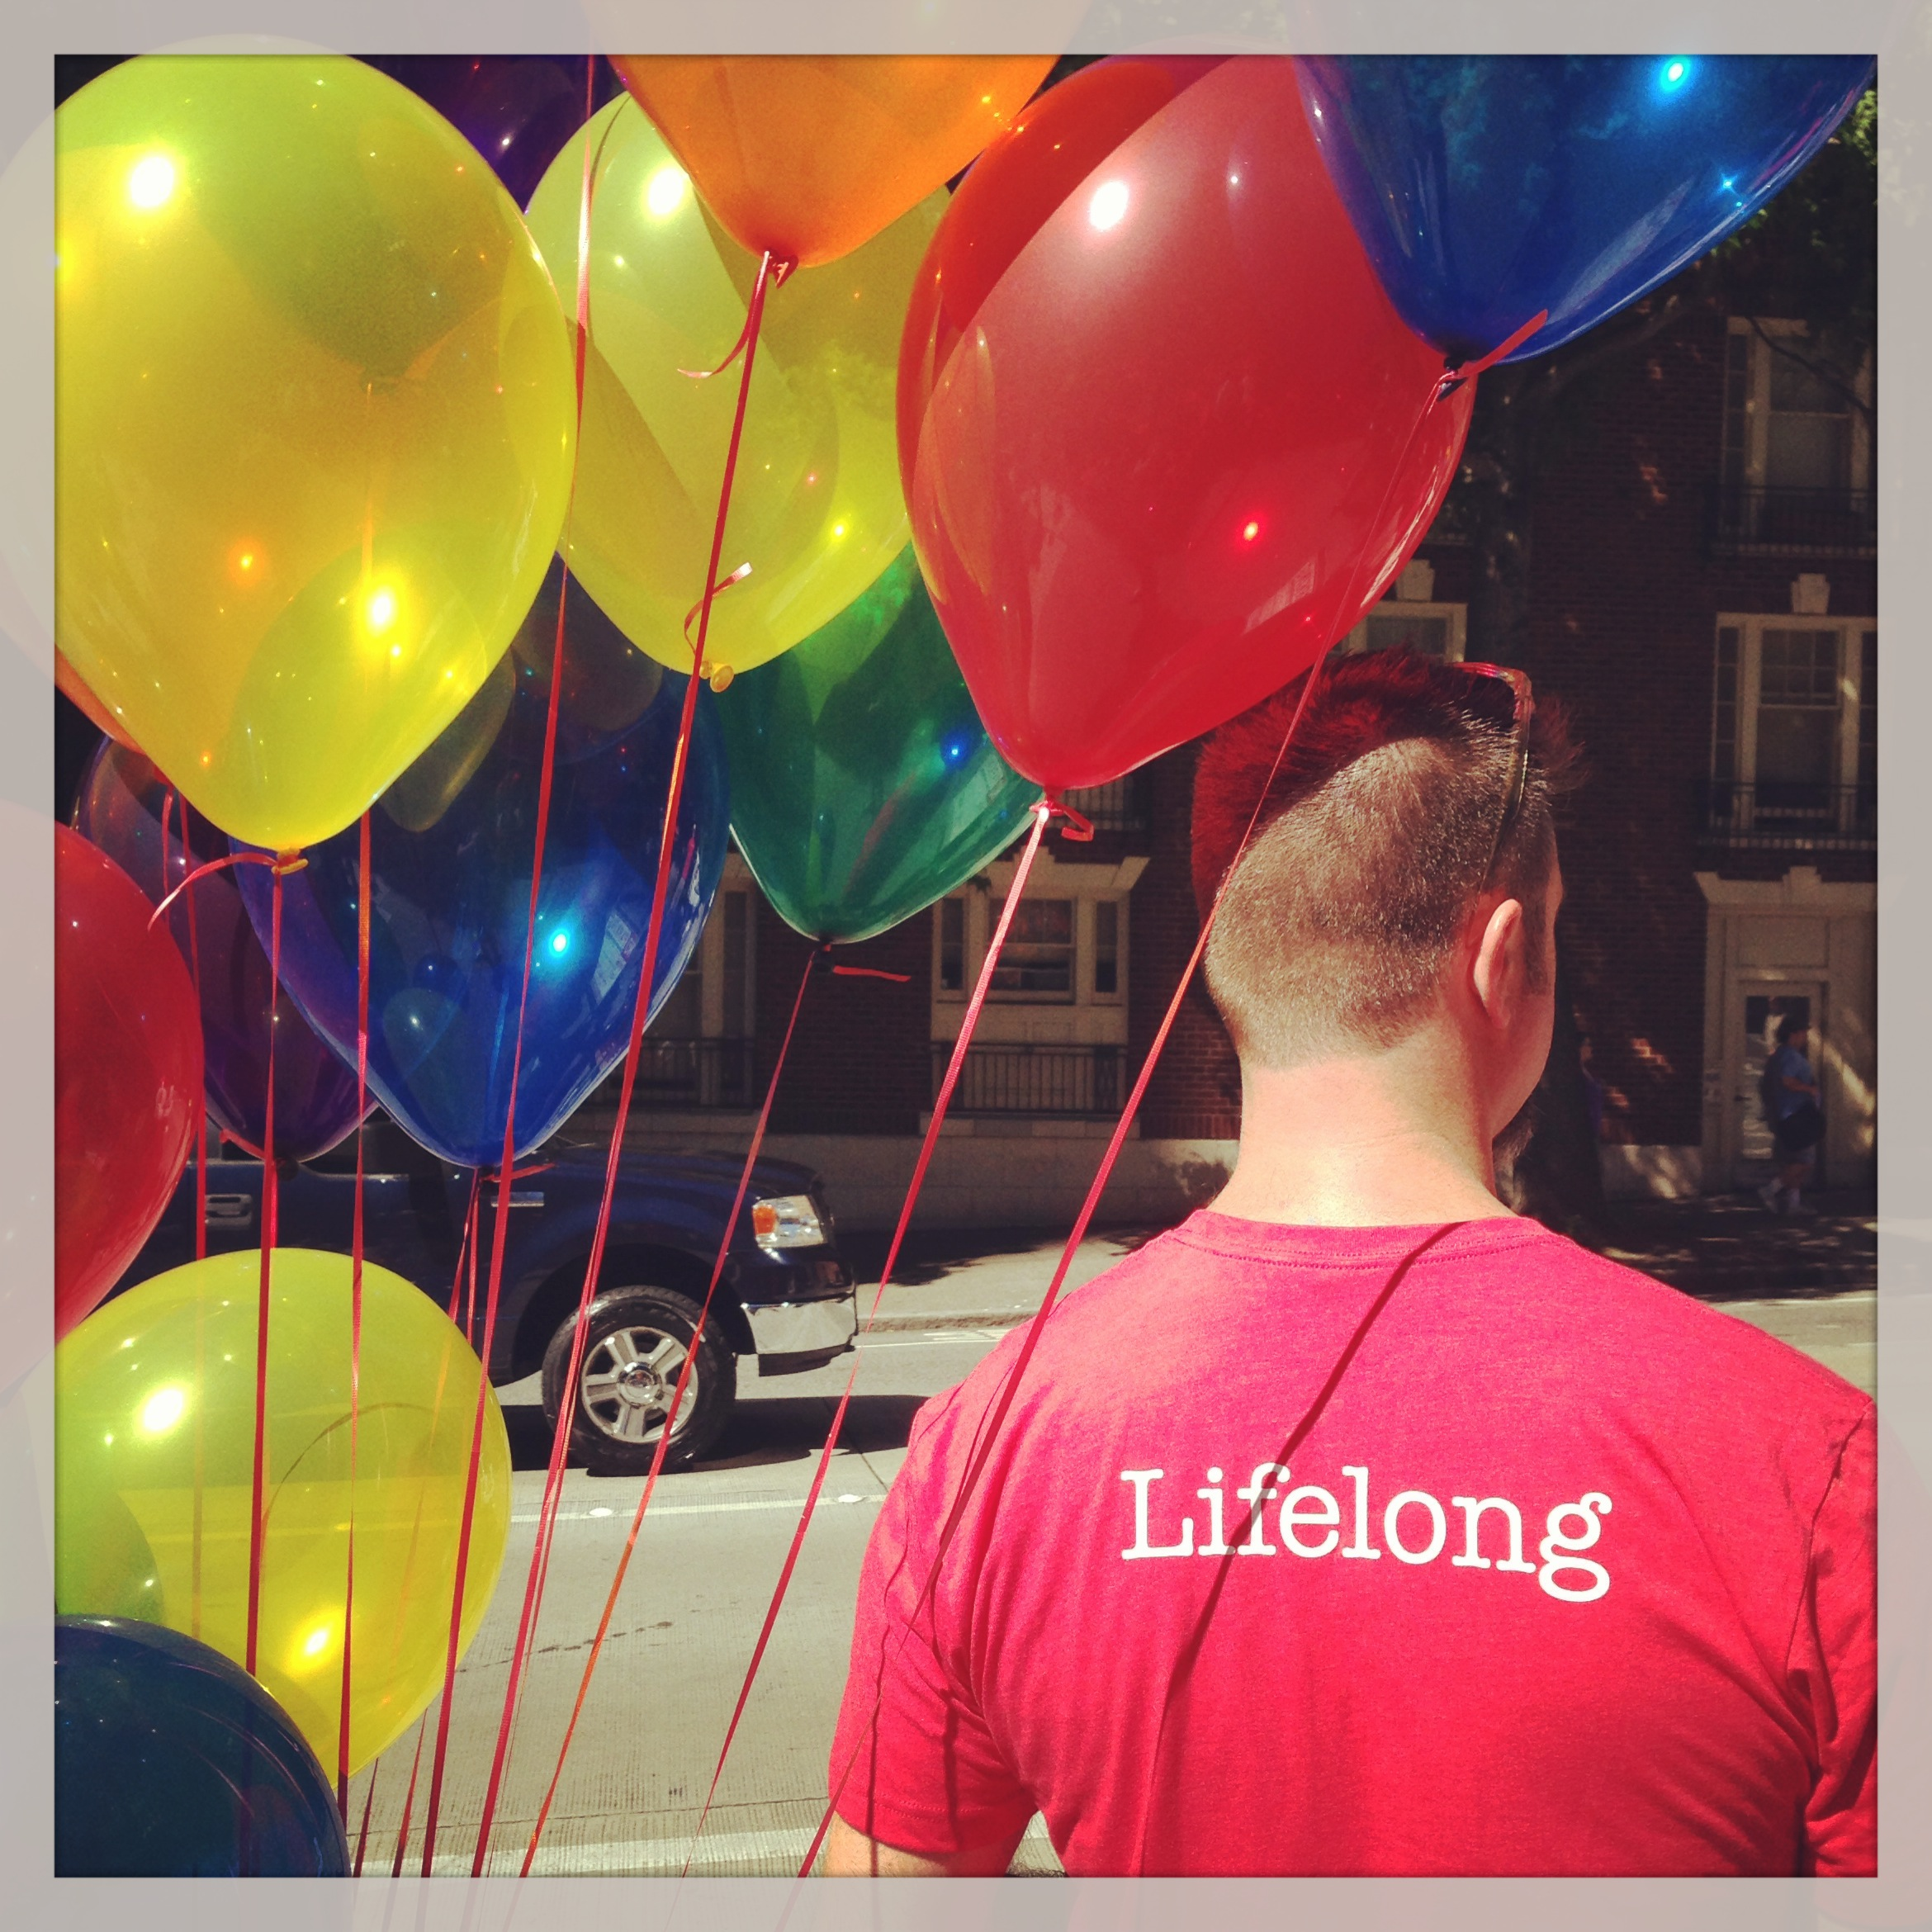 Lifelong rainbow